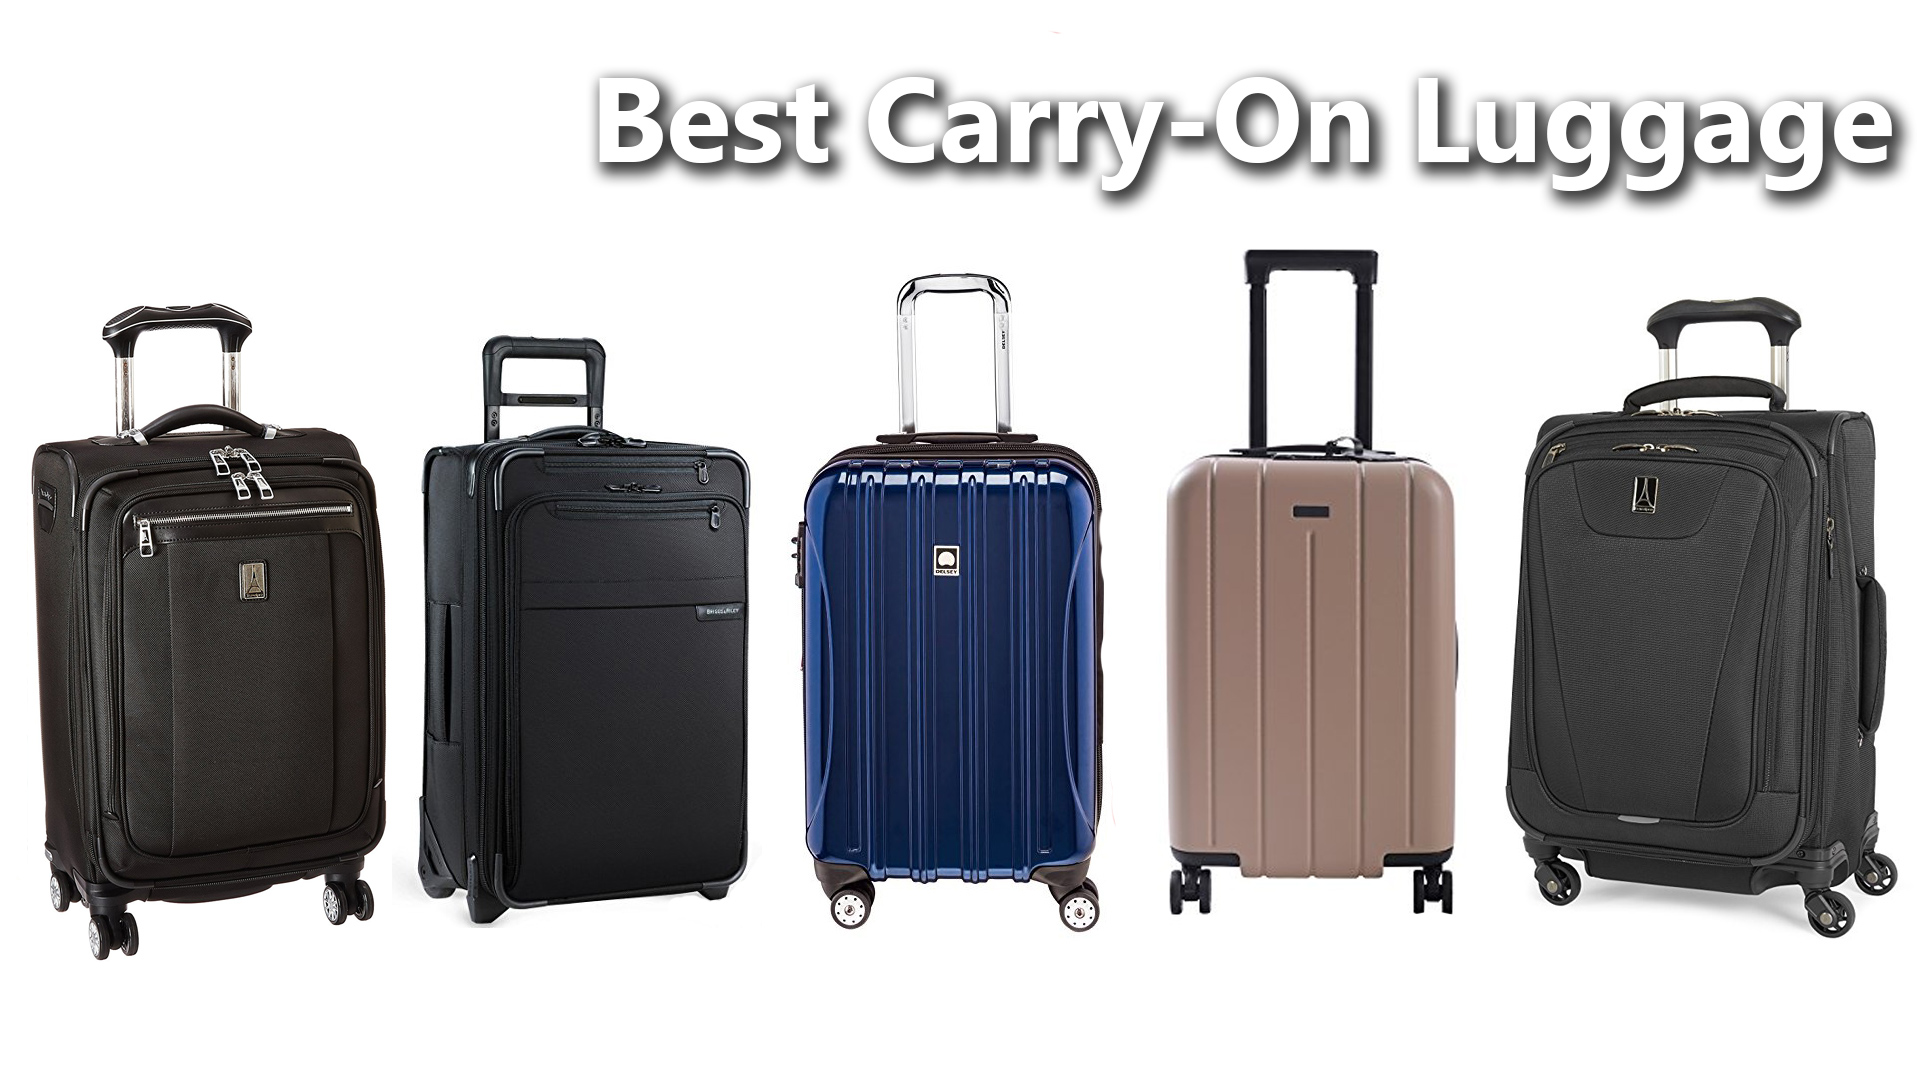 Best Carry On Luggage Bags Travel 2018 2019 2020